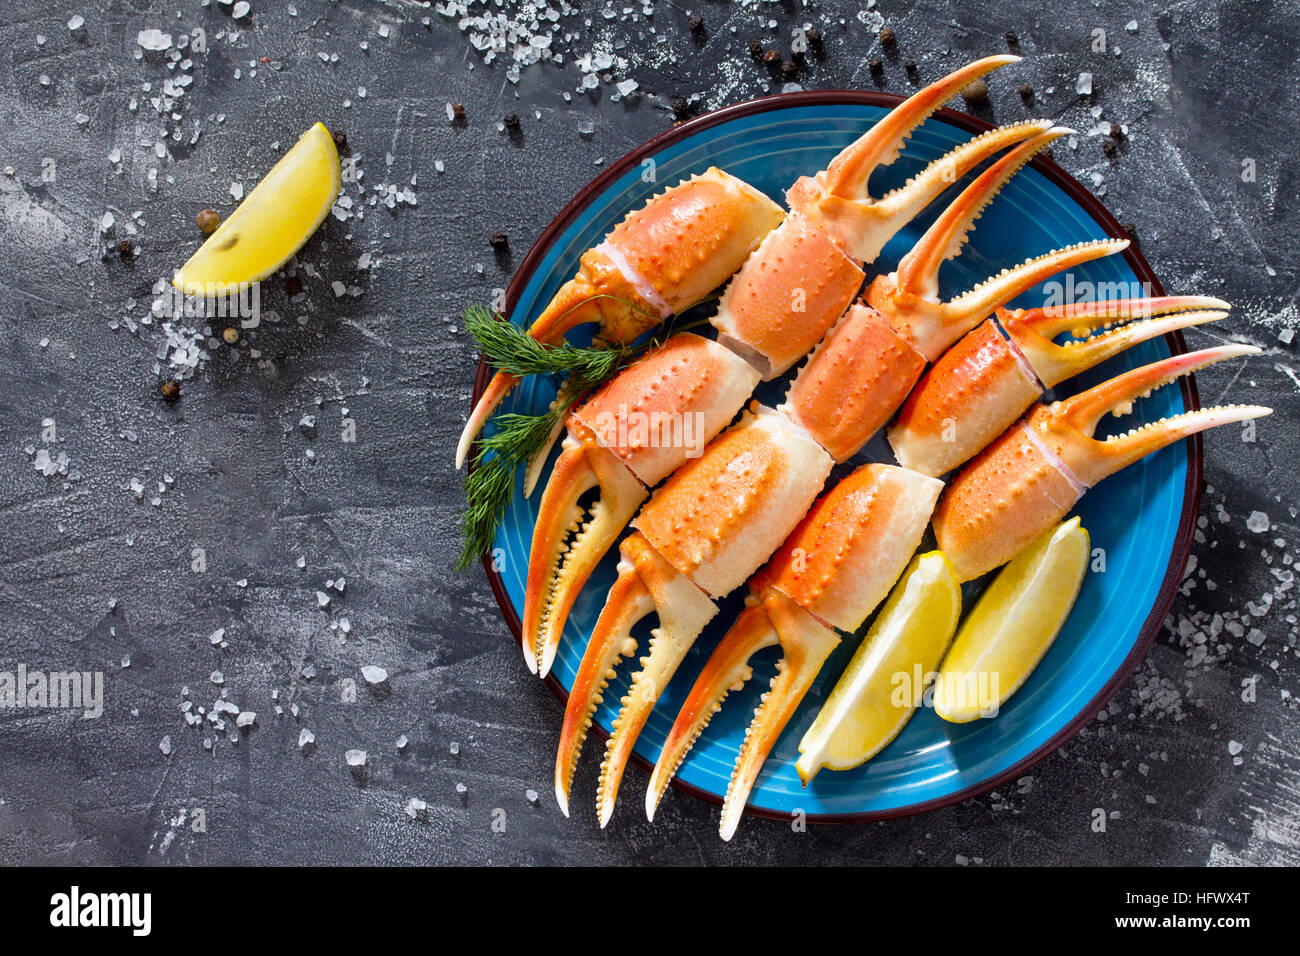 Cooked crab claws with lemon, sea salt and pepper on a concrete background - concept of healthy eating, dieting - Stock Image